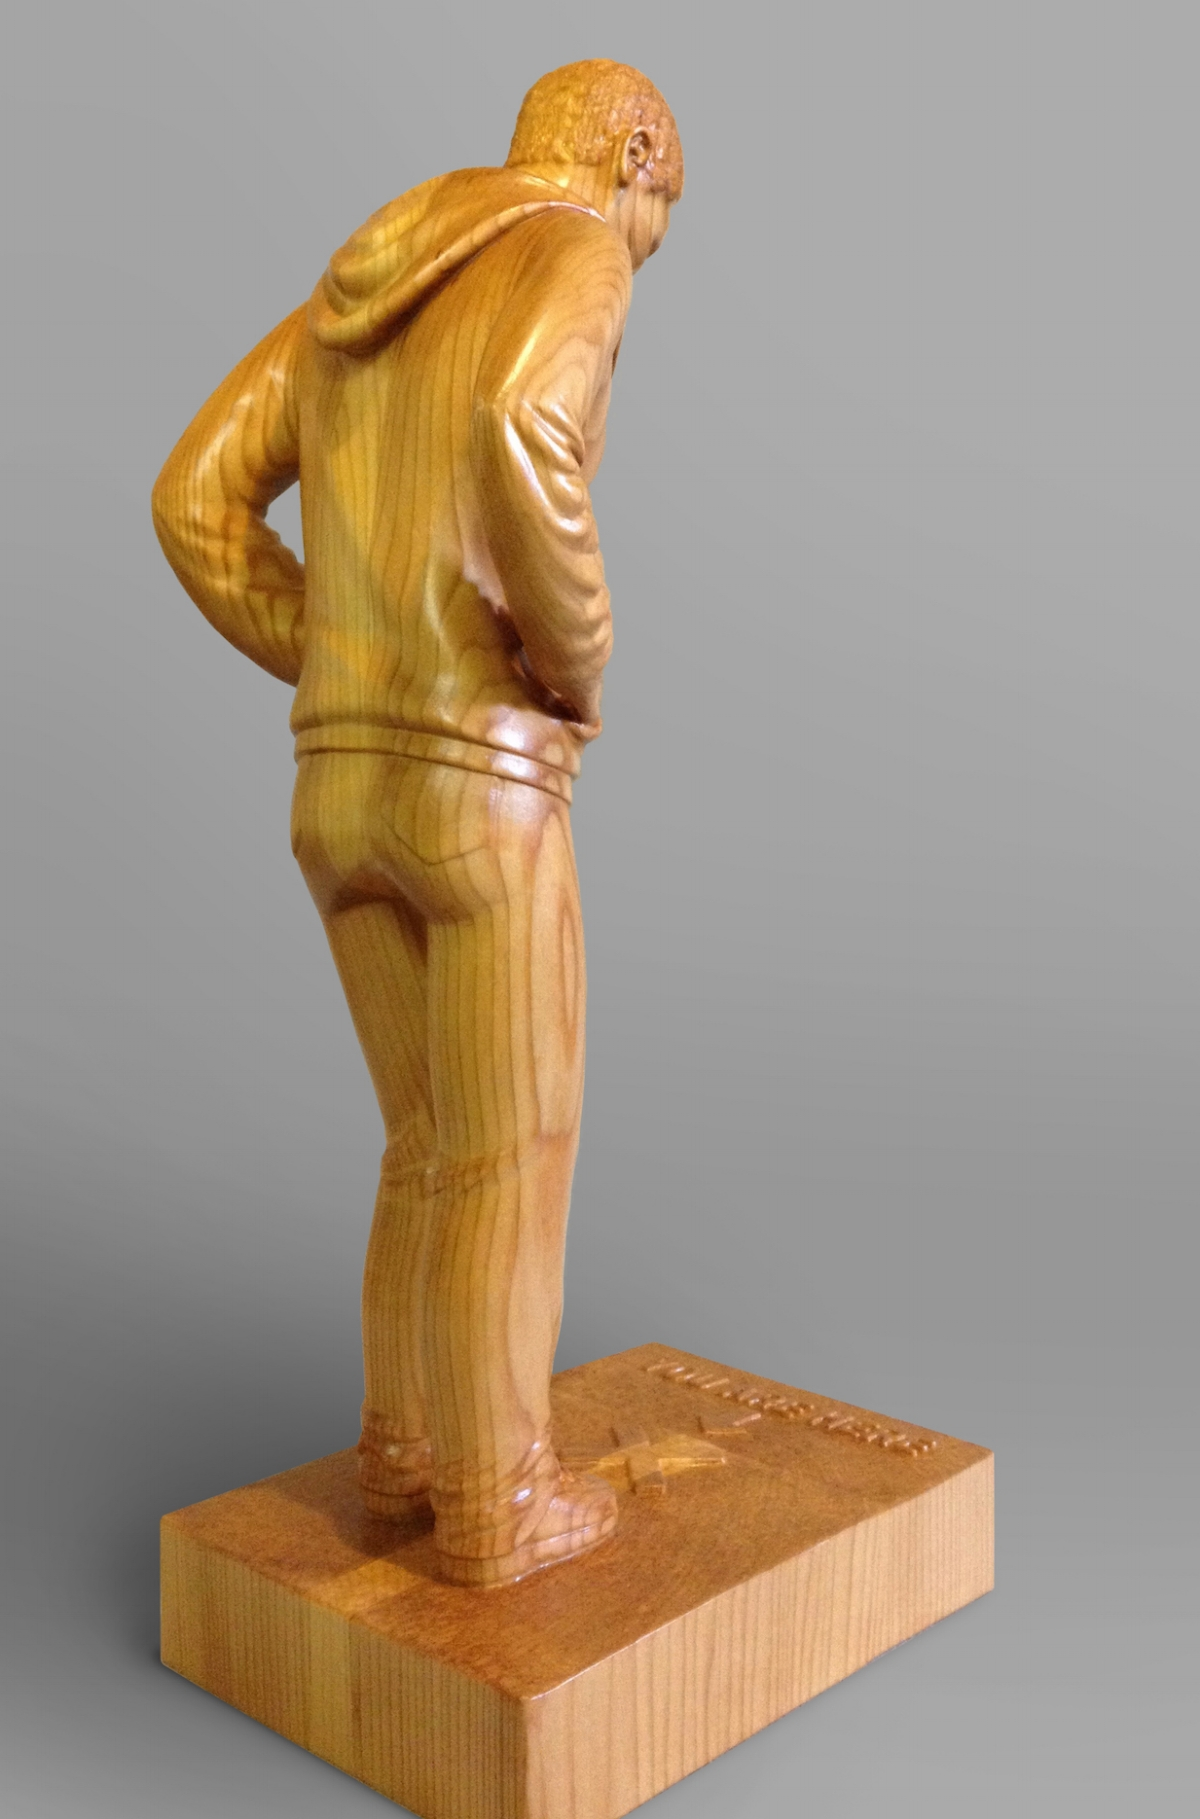 3/4 view of right side of figure